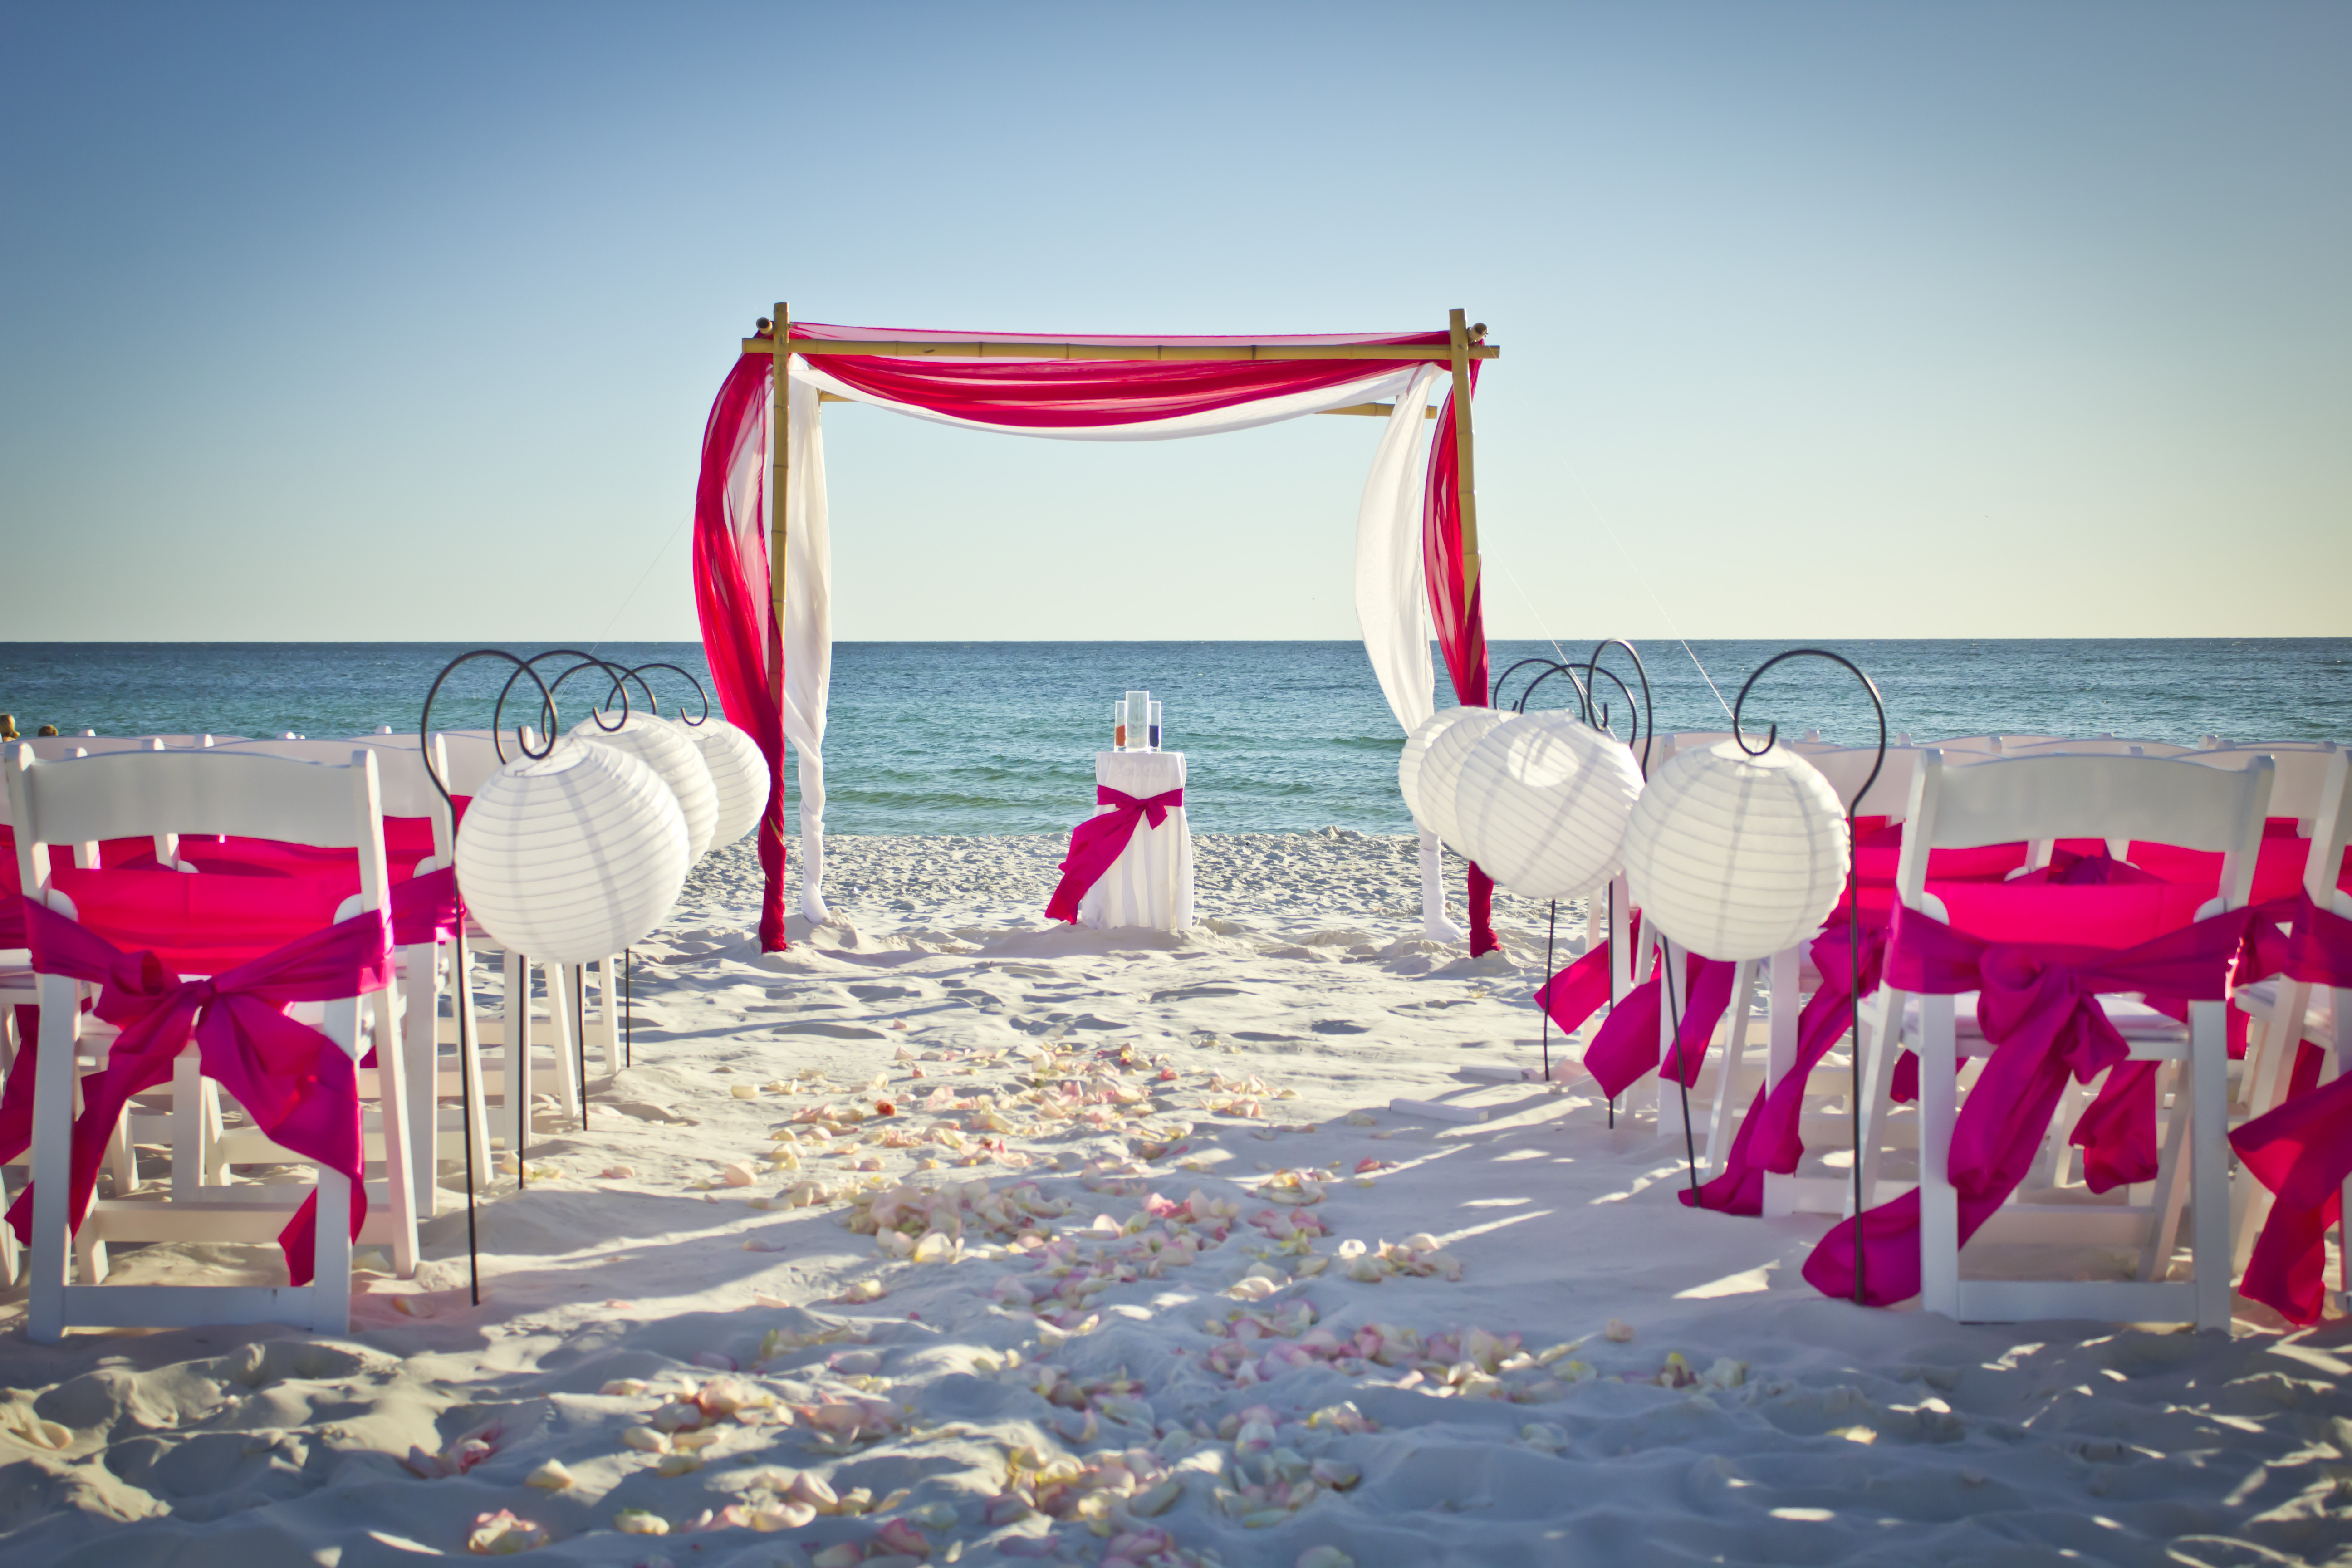 Real panama city beach wedding brandy and brandon destin beach brandy junglespirit Image collections